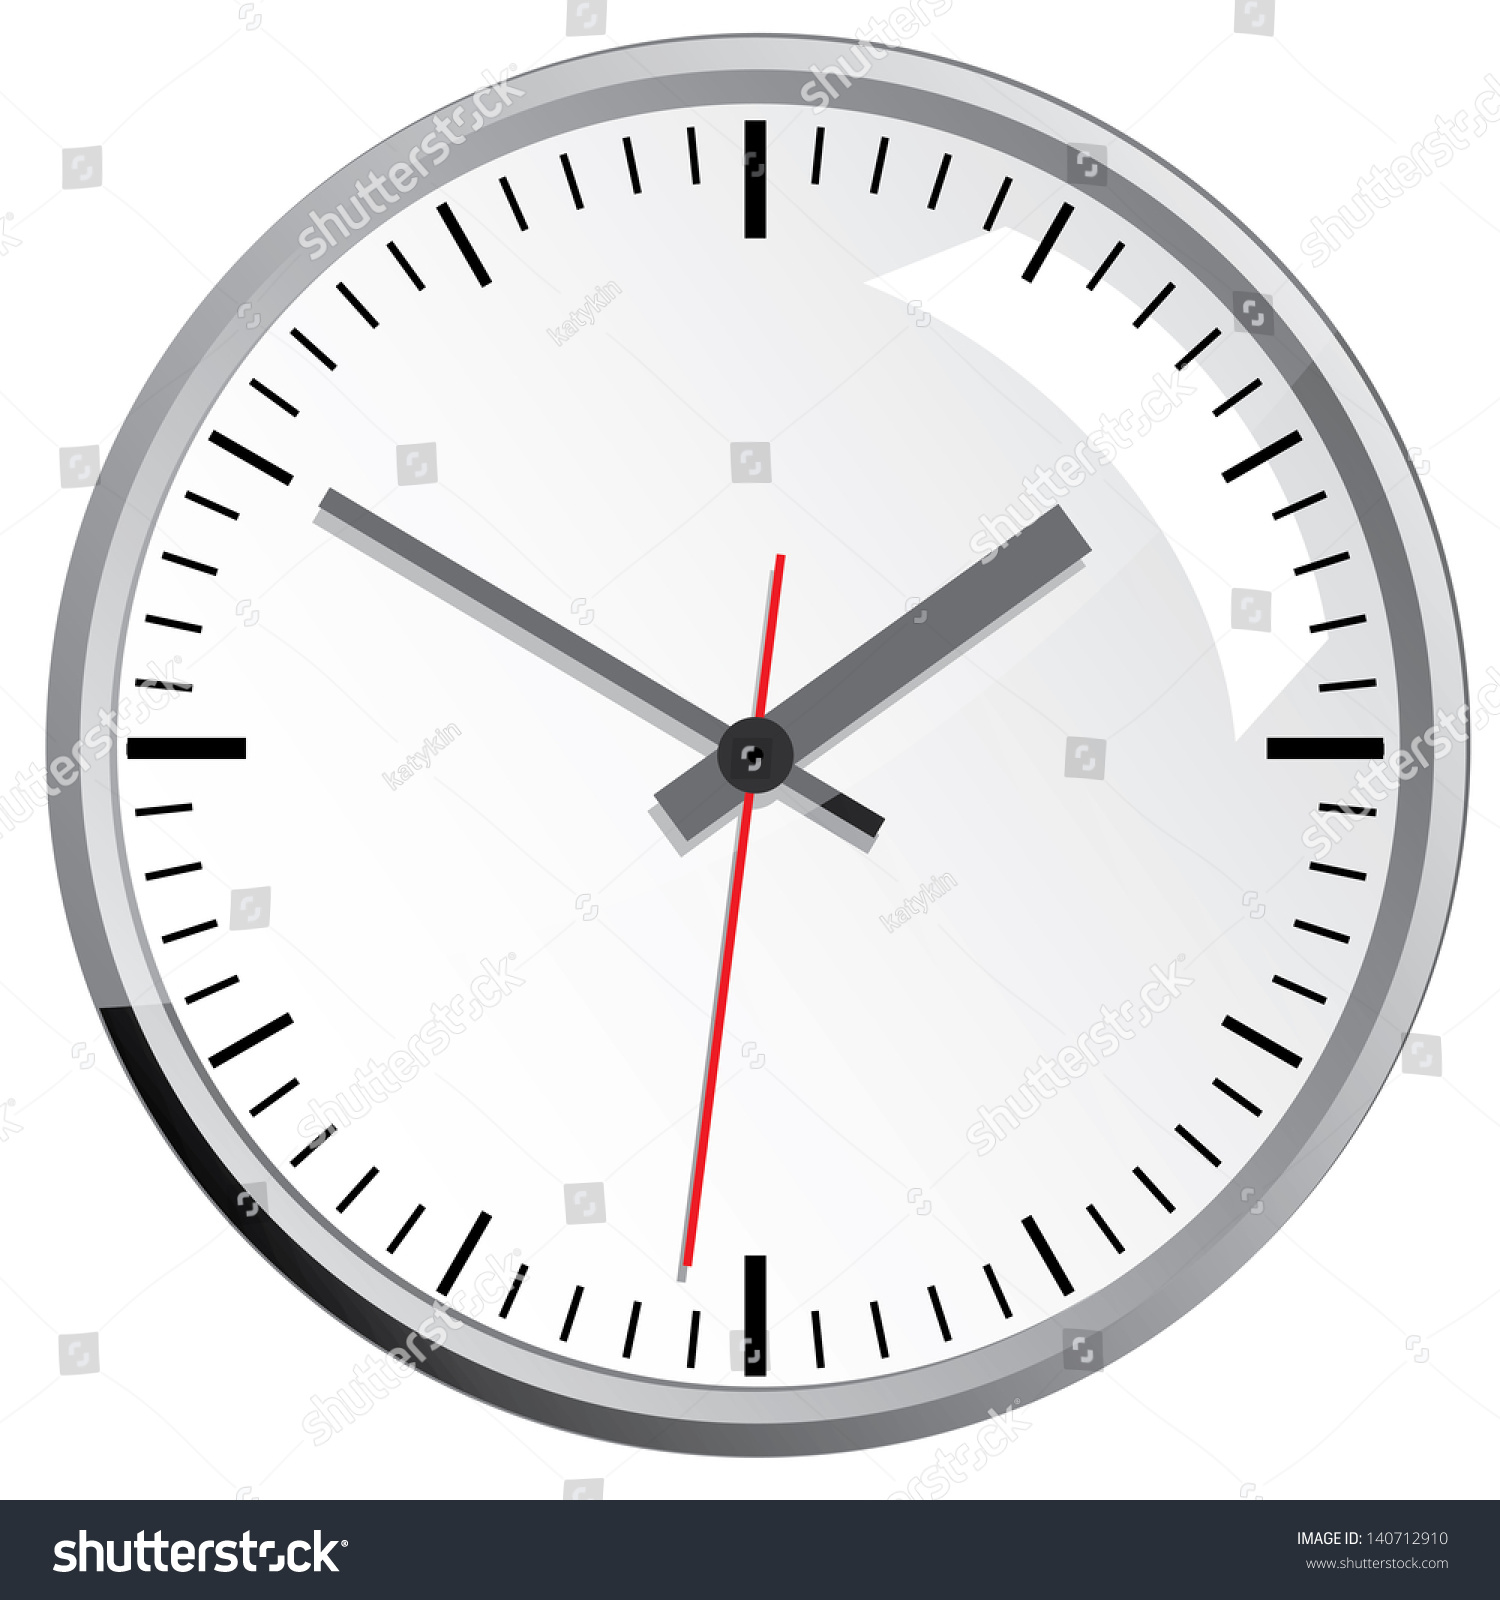 Wall mounted digital clocks wall mounted digital clock stock vector 140712910 shutterstock amipublicfo Image collections